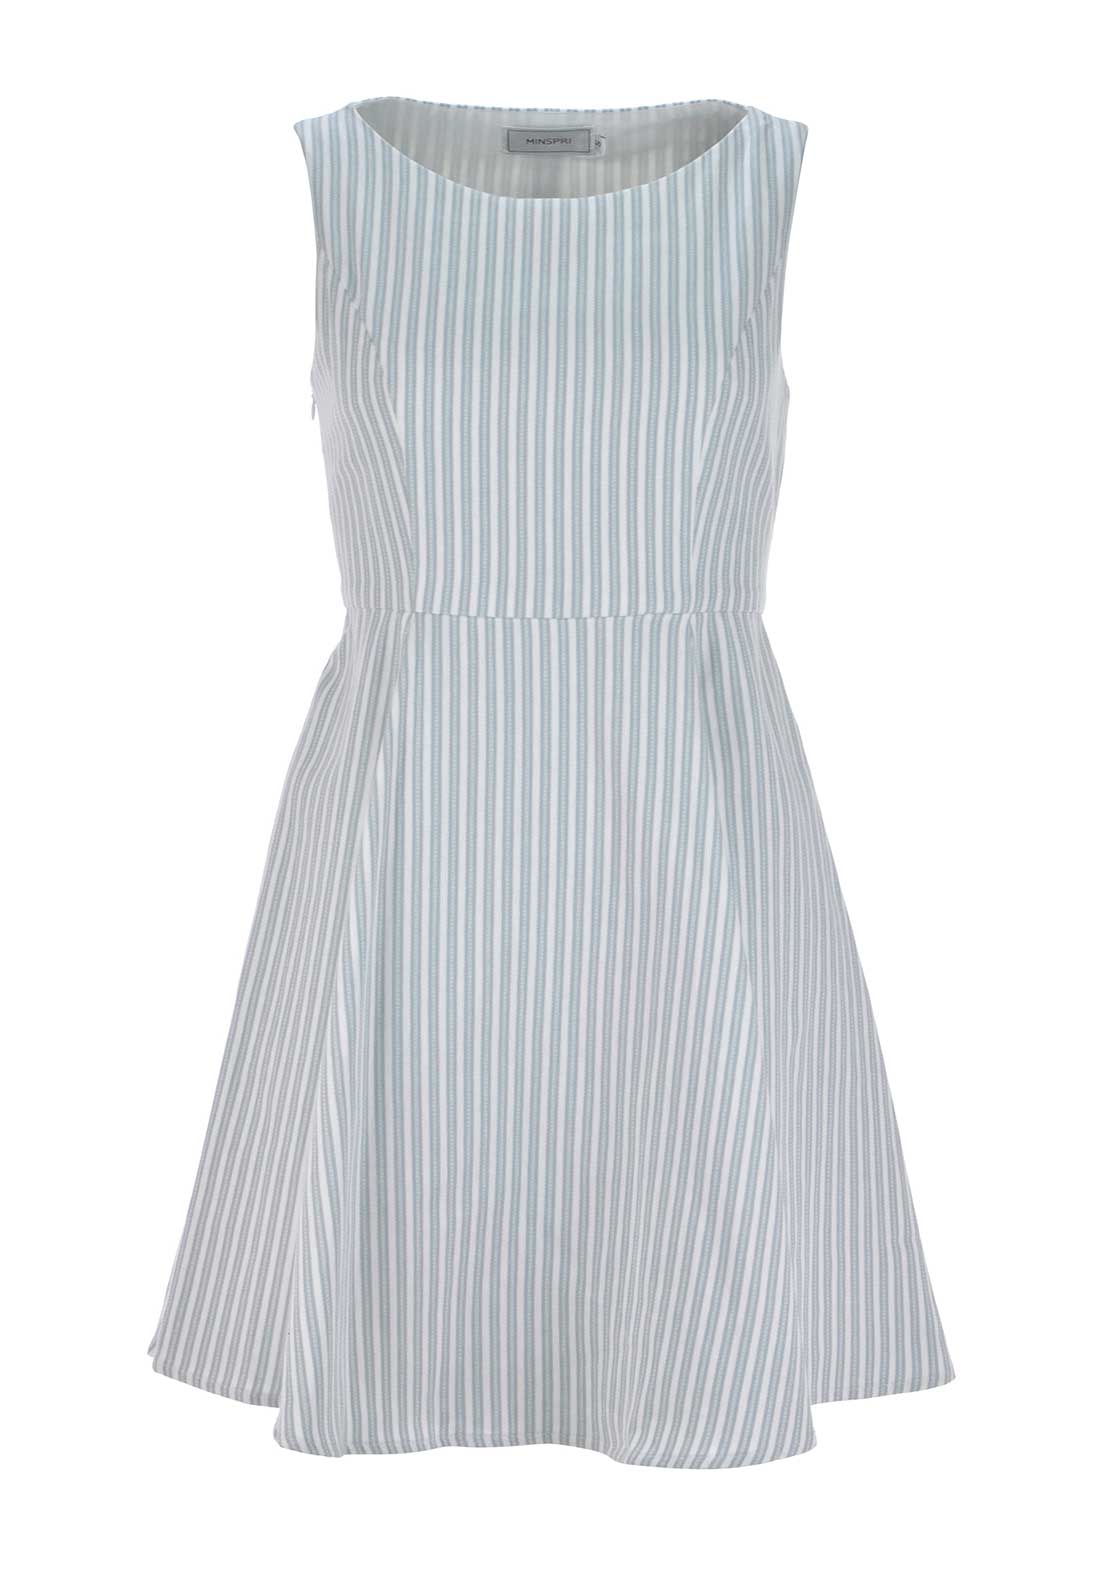 Boutique Sleeveless Striped Twill Cotton Skater Dress, White